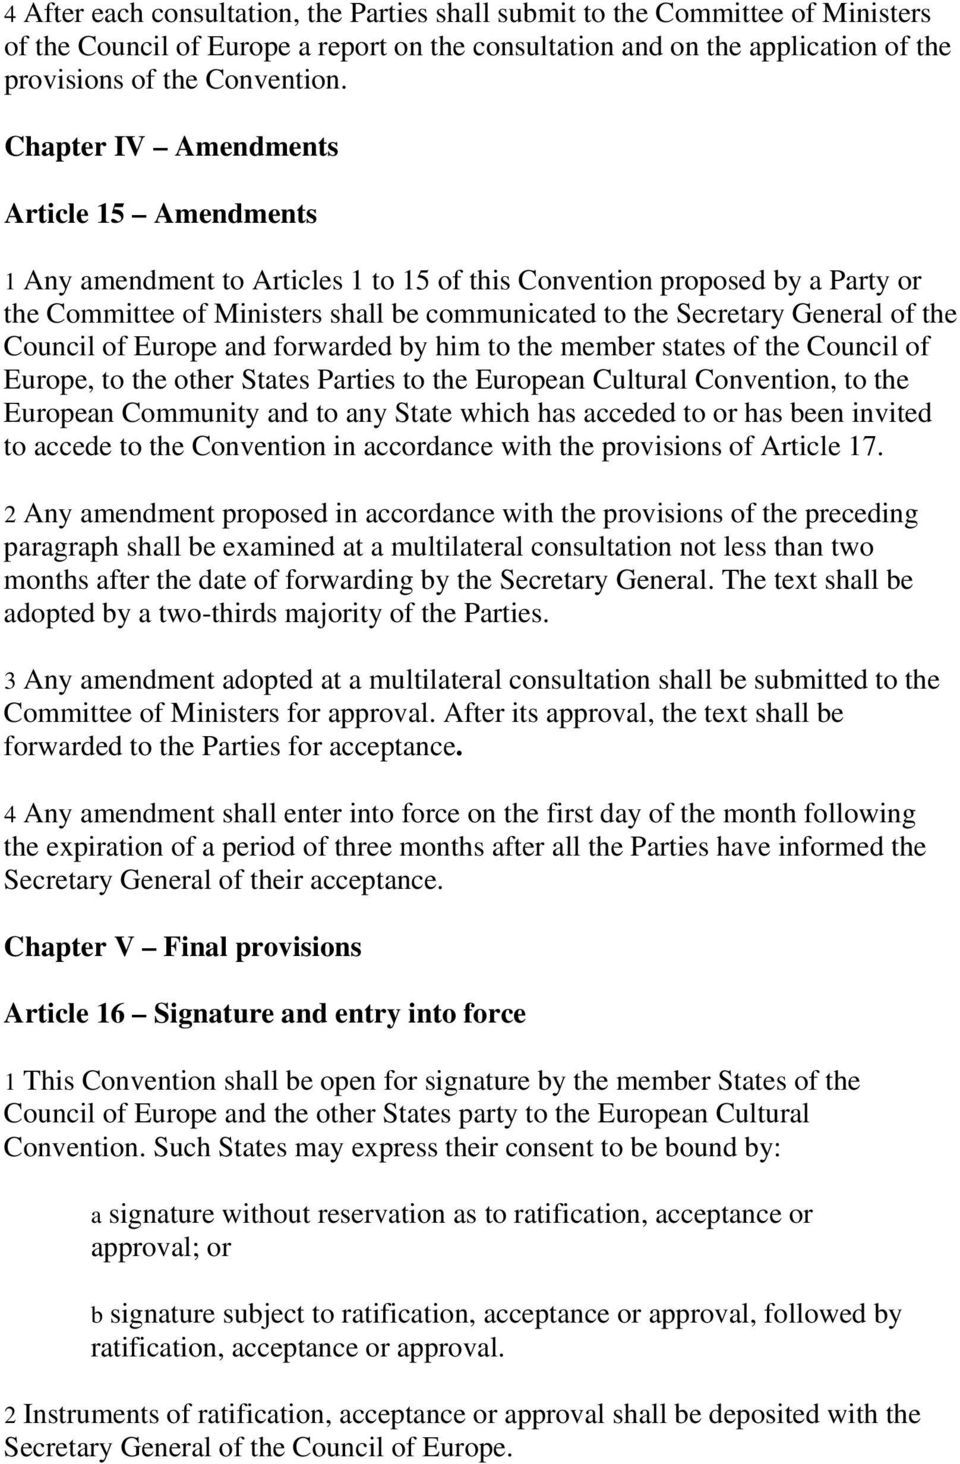 the Council of Europe and forwarded by him to the member states of the Council of Europe, to the other States Parties to the European Cultural Convention, to the European Community and to any State